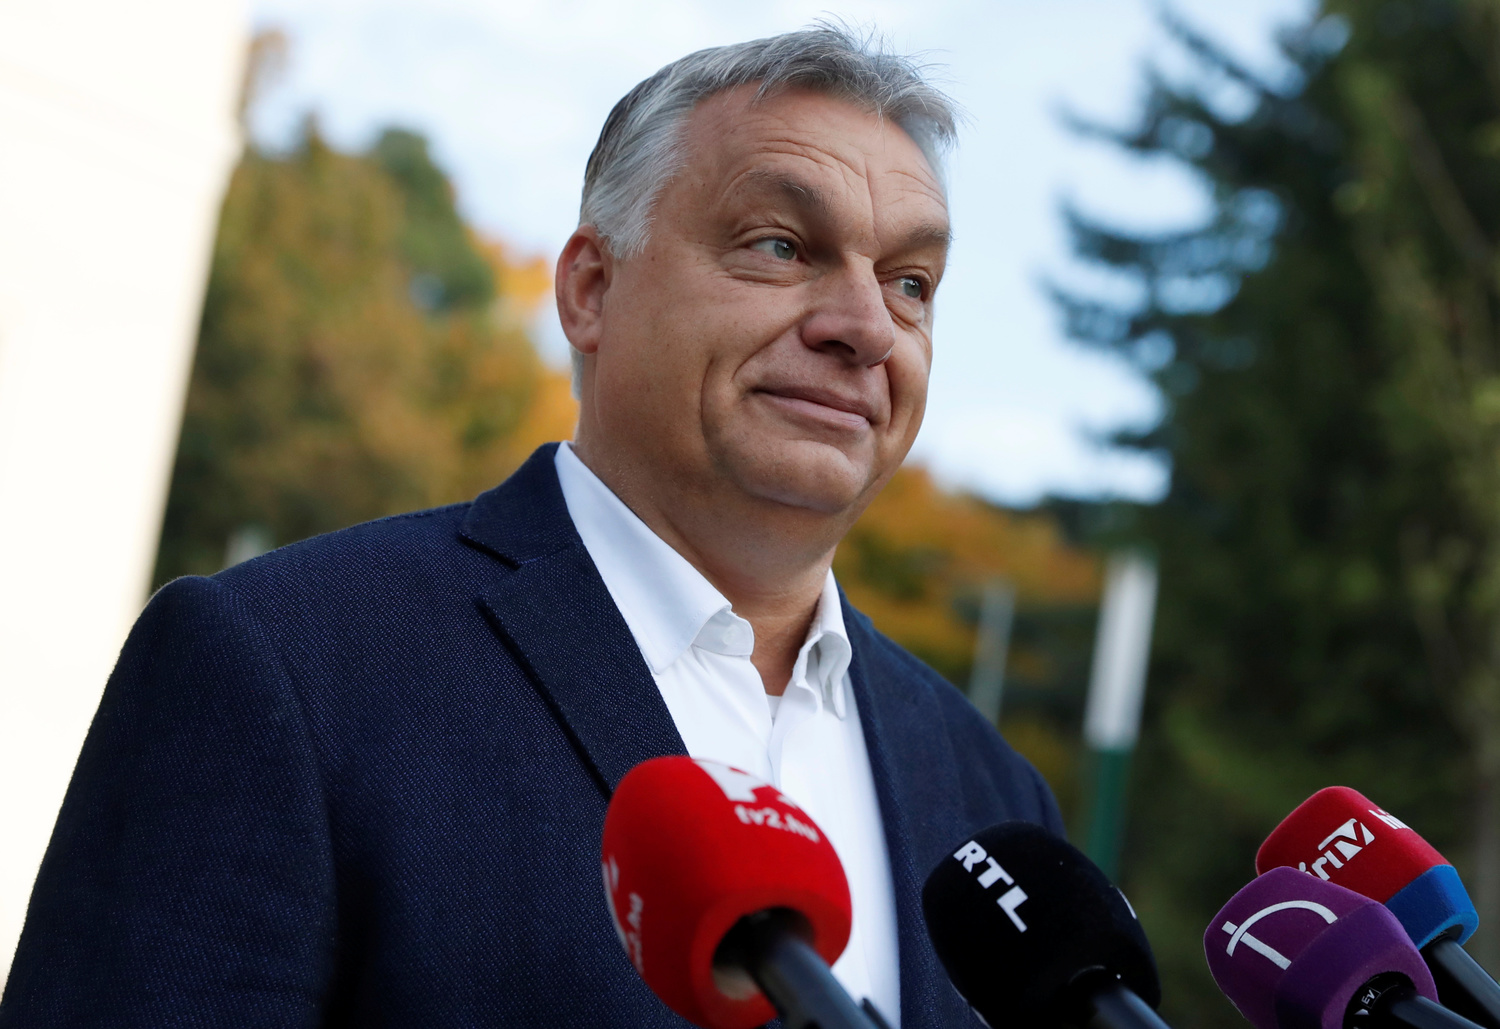 Hungarian Prime Minister Viktor Orban talks to the media after casting his ballot during Hungary's local elections in Budapest, Hungary, October 13, 2019. REUTERS/Bernadett Szabo